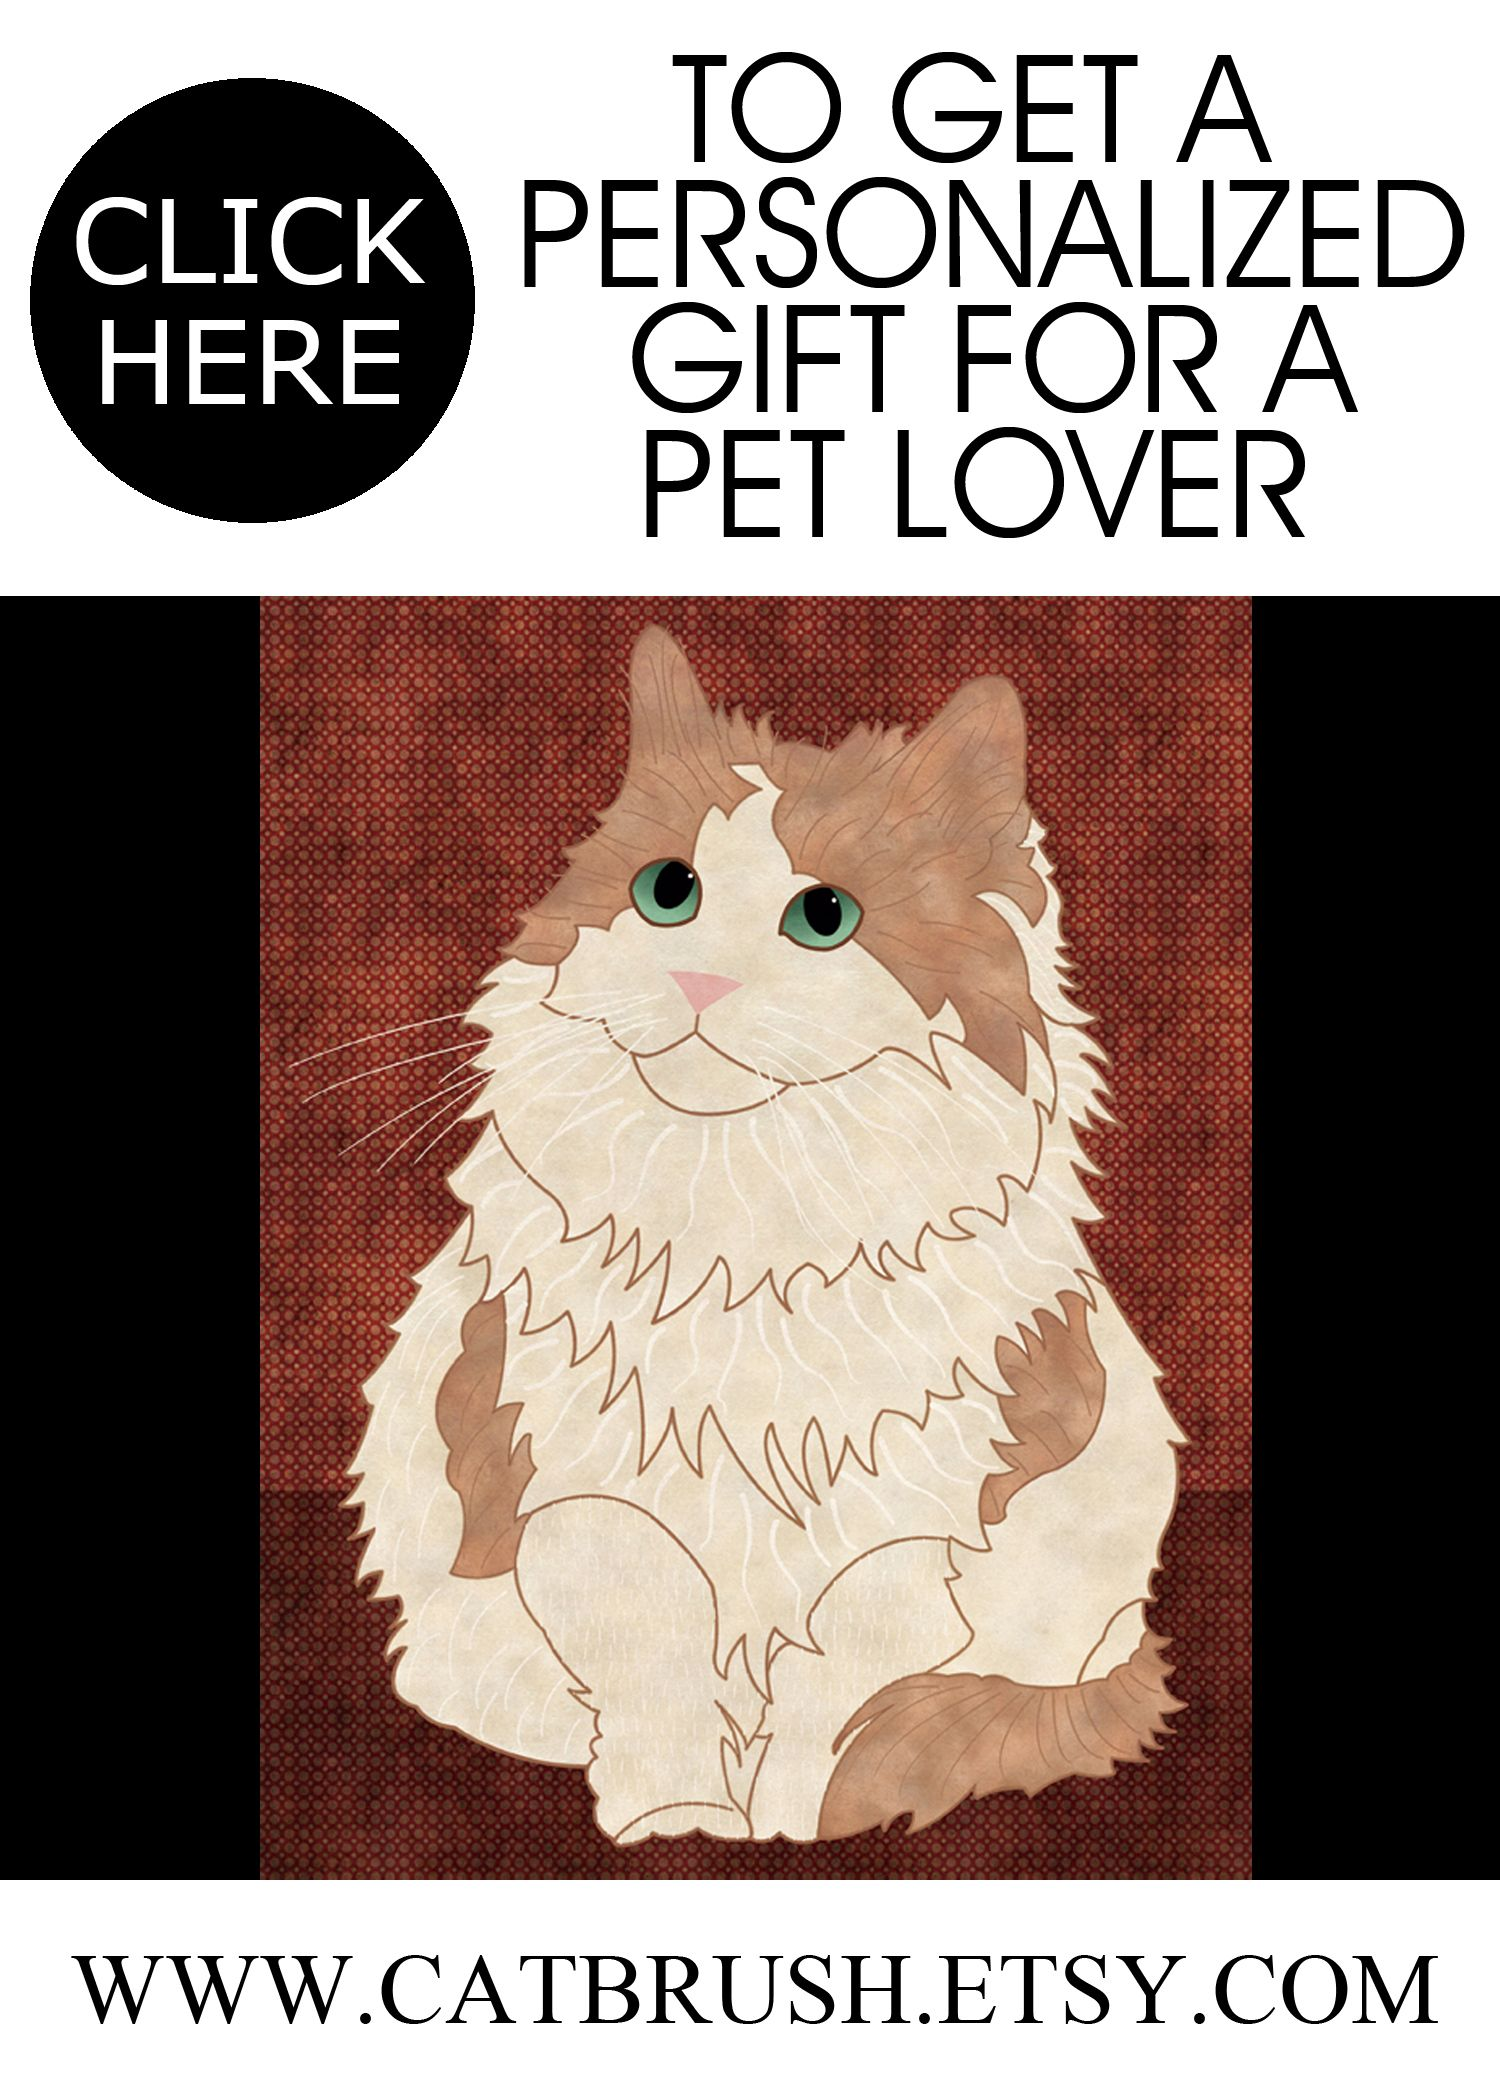 ca9167fb3bf9 Personalized Gifts · Unique Gifts · Jpg File, Pet Portraits, Family  Portraits, Pet Memorials, Dog Art, Line